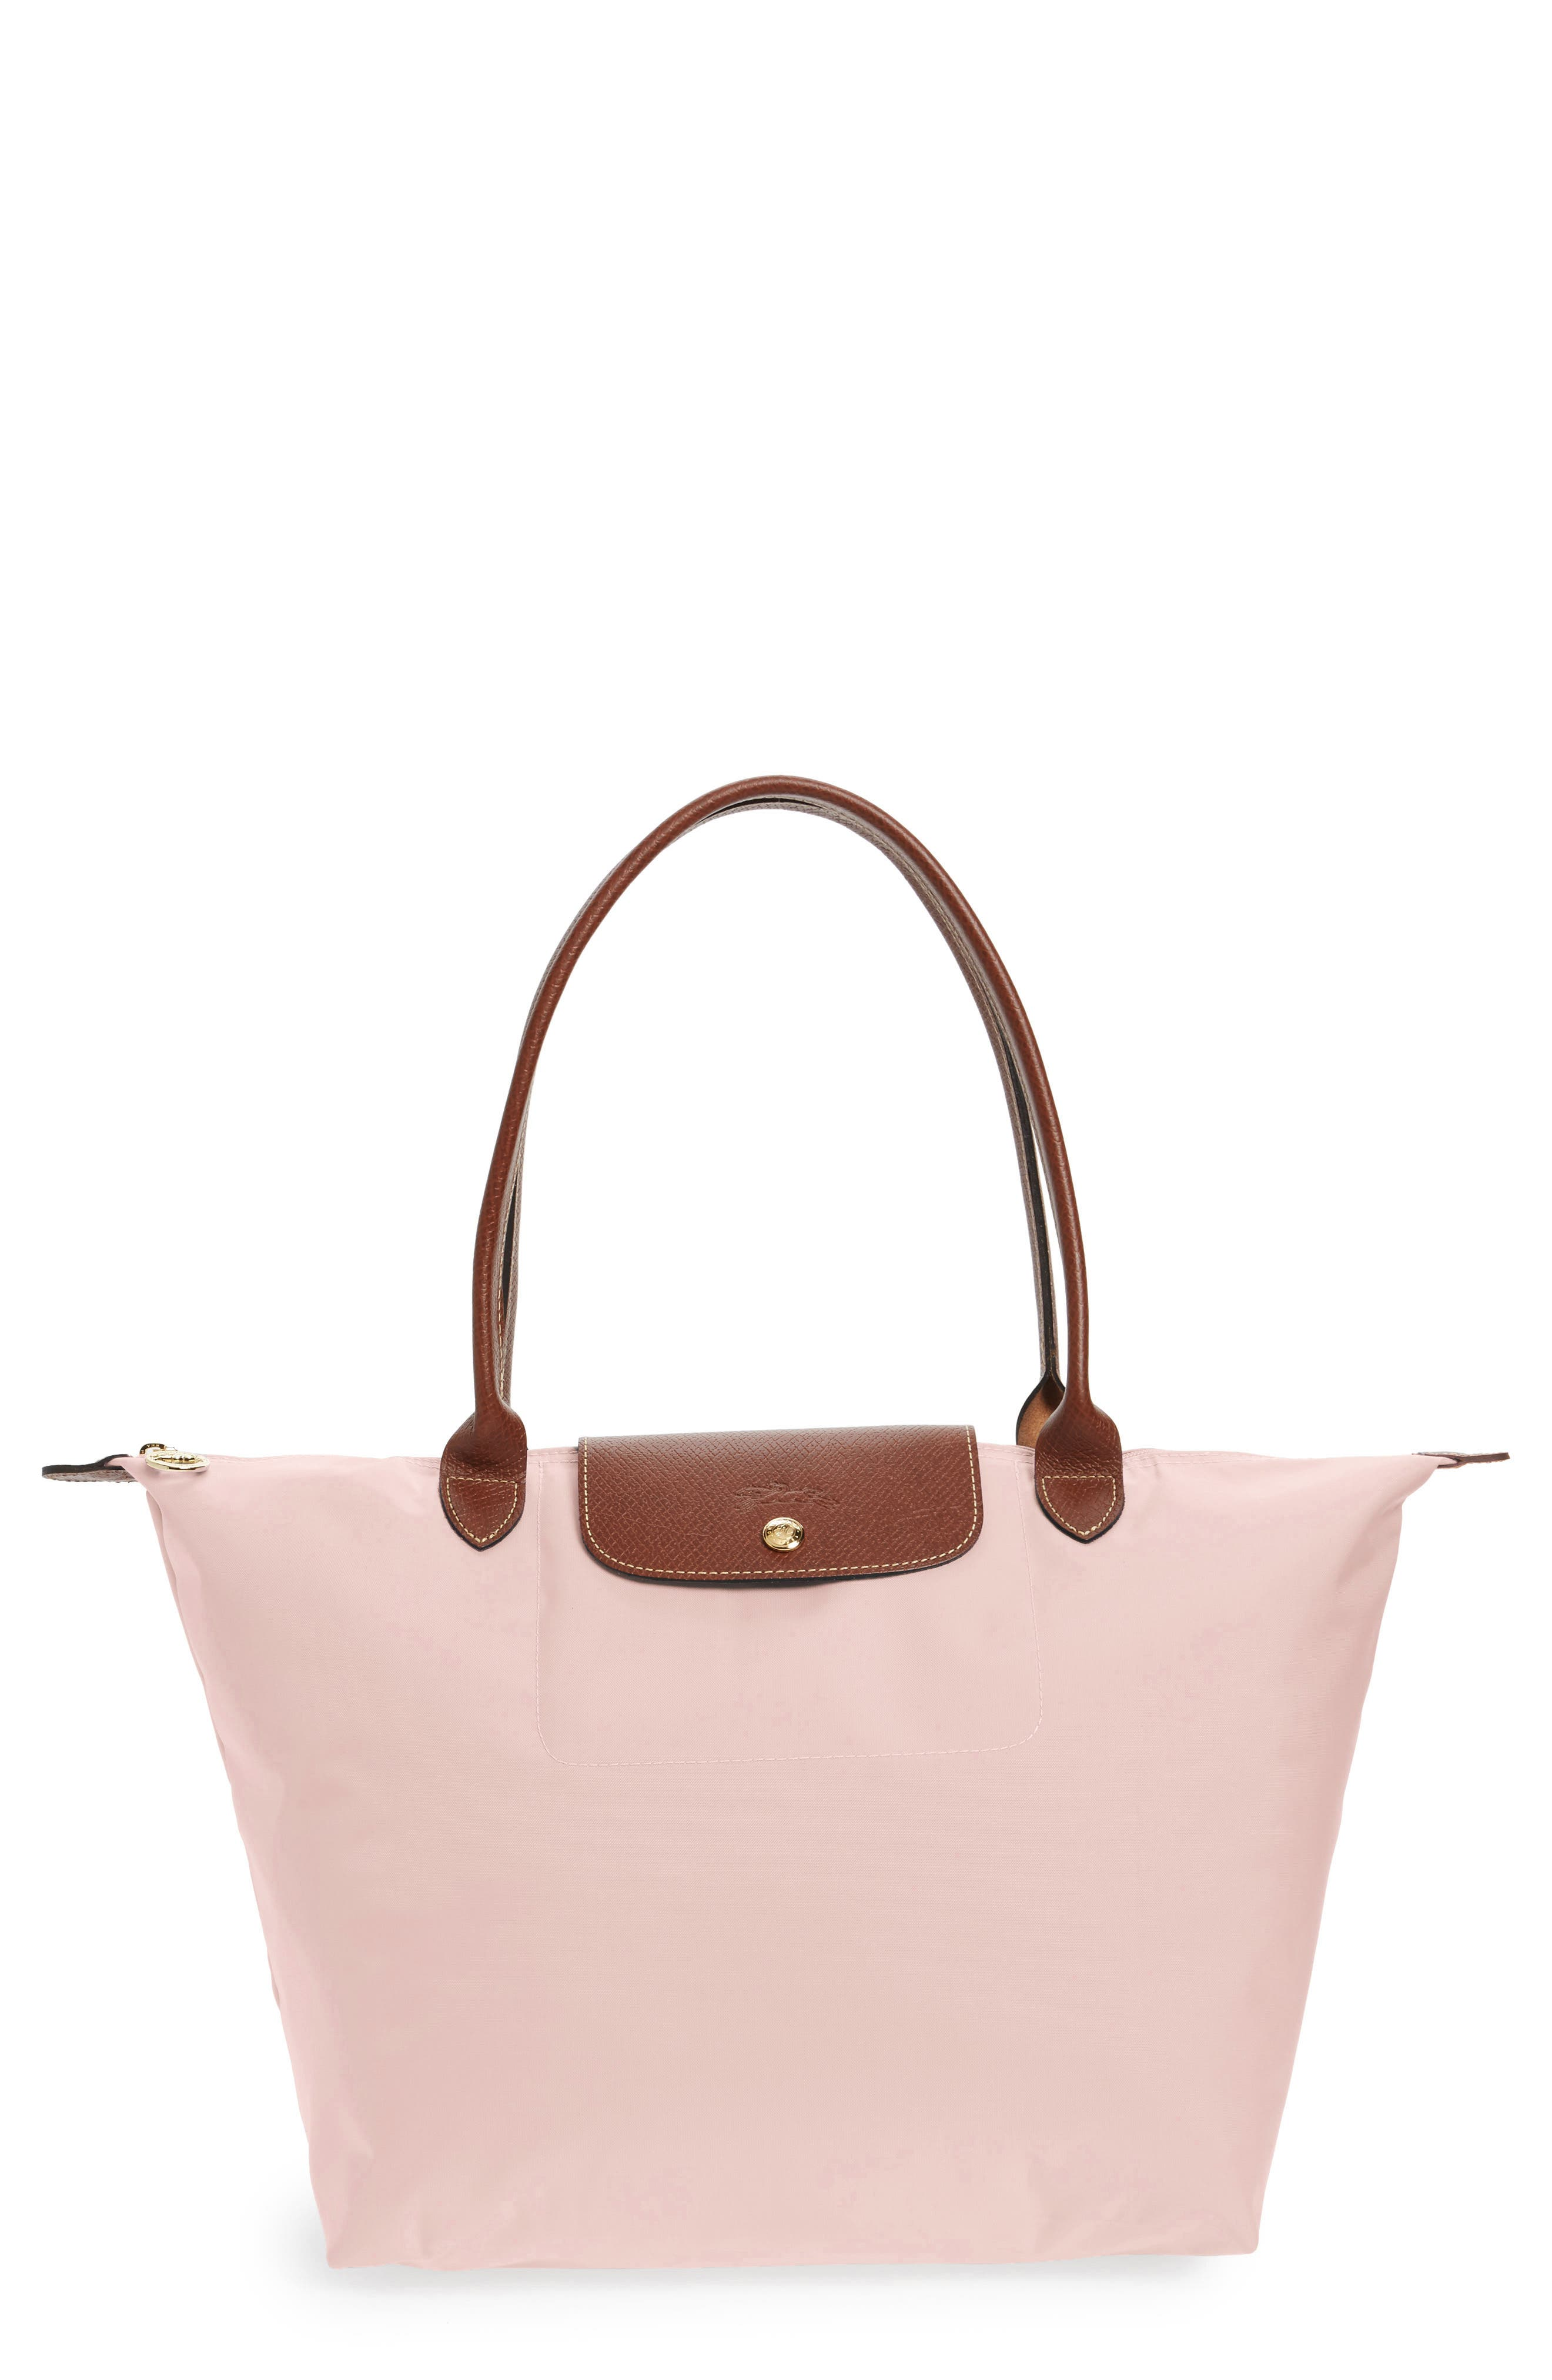 LONGCHAMP, Large Le Pliage Tote, Main thumbnail 1, color, PINK ICE